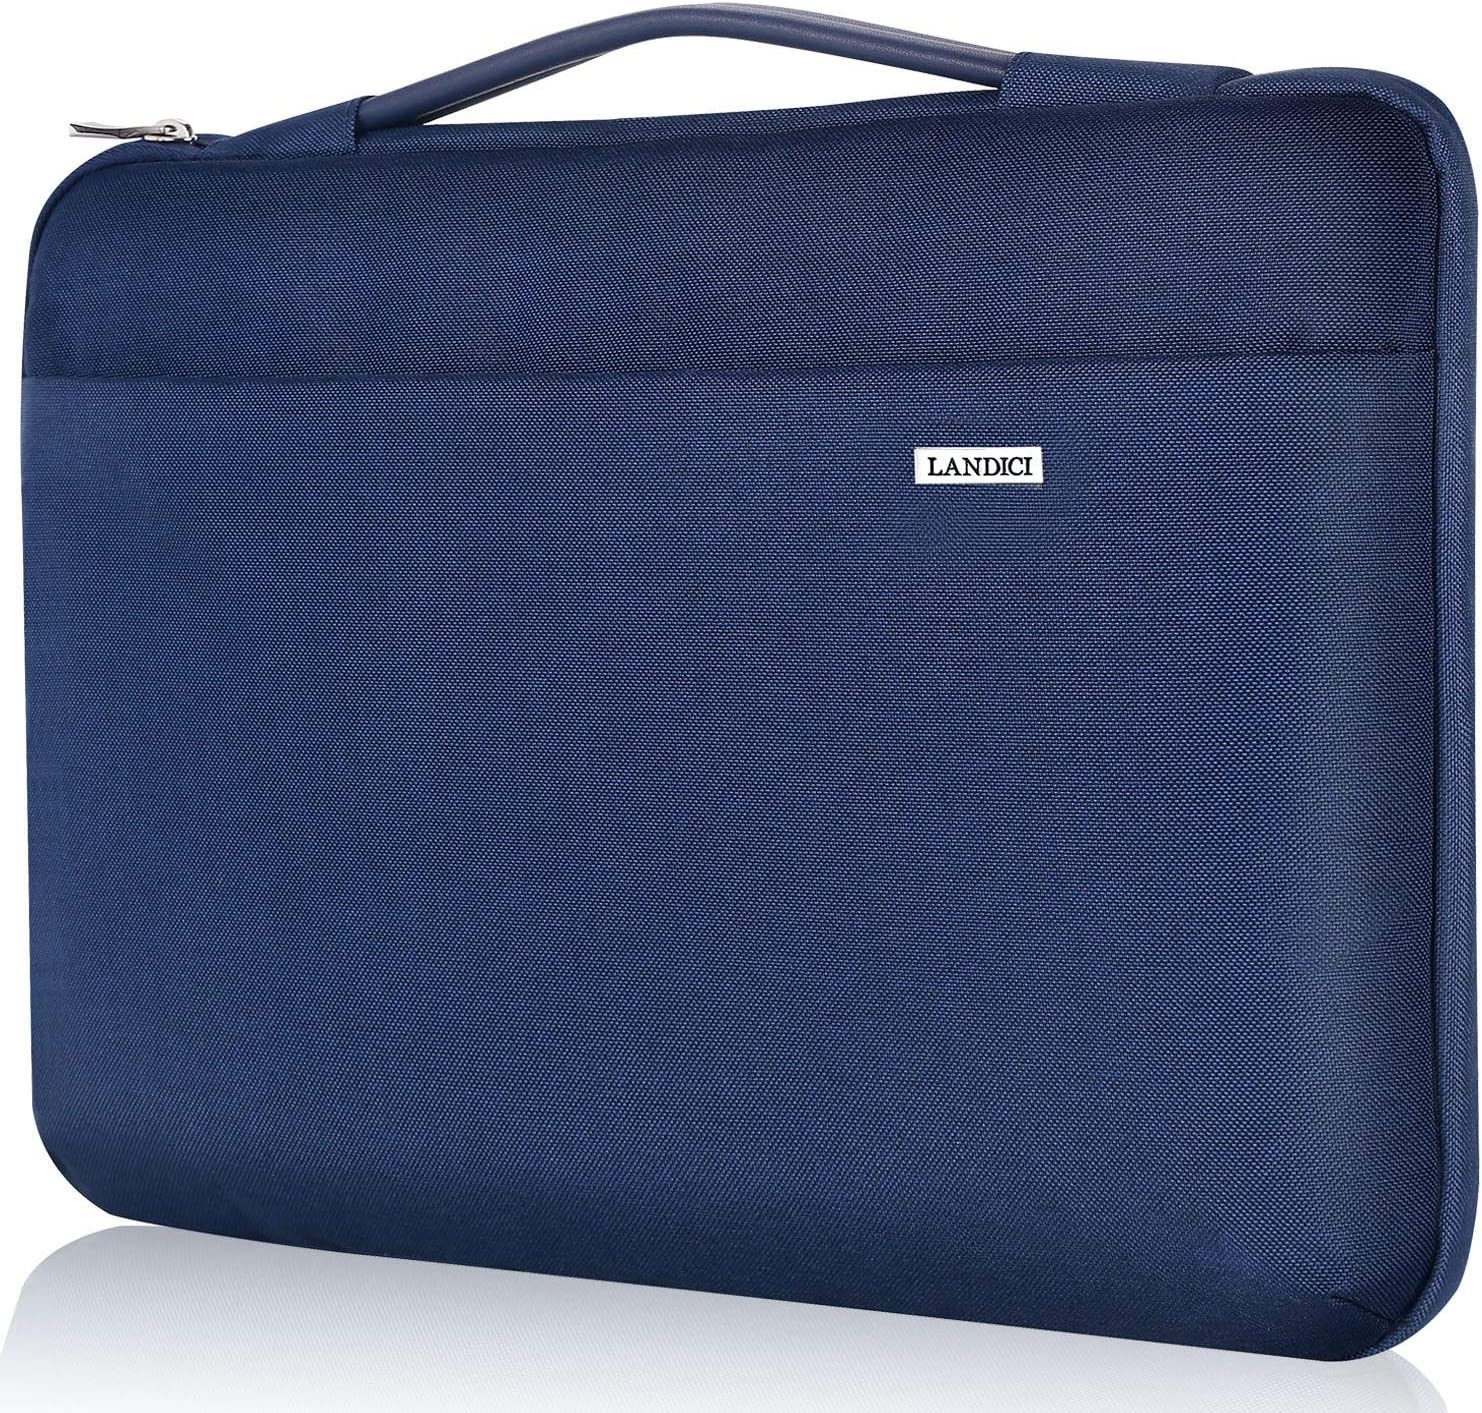 "Landici Laptop Case Sleeve 11.6-12 Inch with Handle,360°Protective Computer Bag Compatible with MacBook Air 11/Surface Pro 7 6/Chromebook/Ipad Pro 12.9,Waterproof 12.5"" Acer Hp Tablet Cover-Blue"